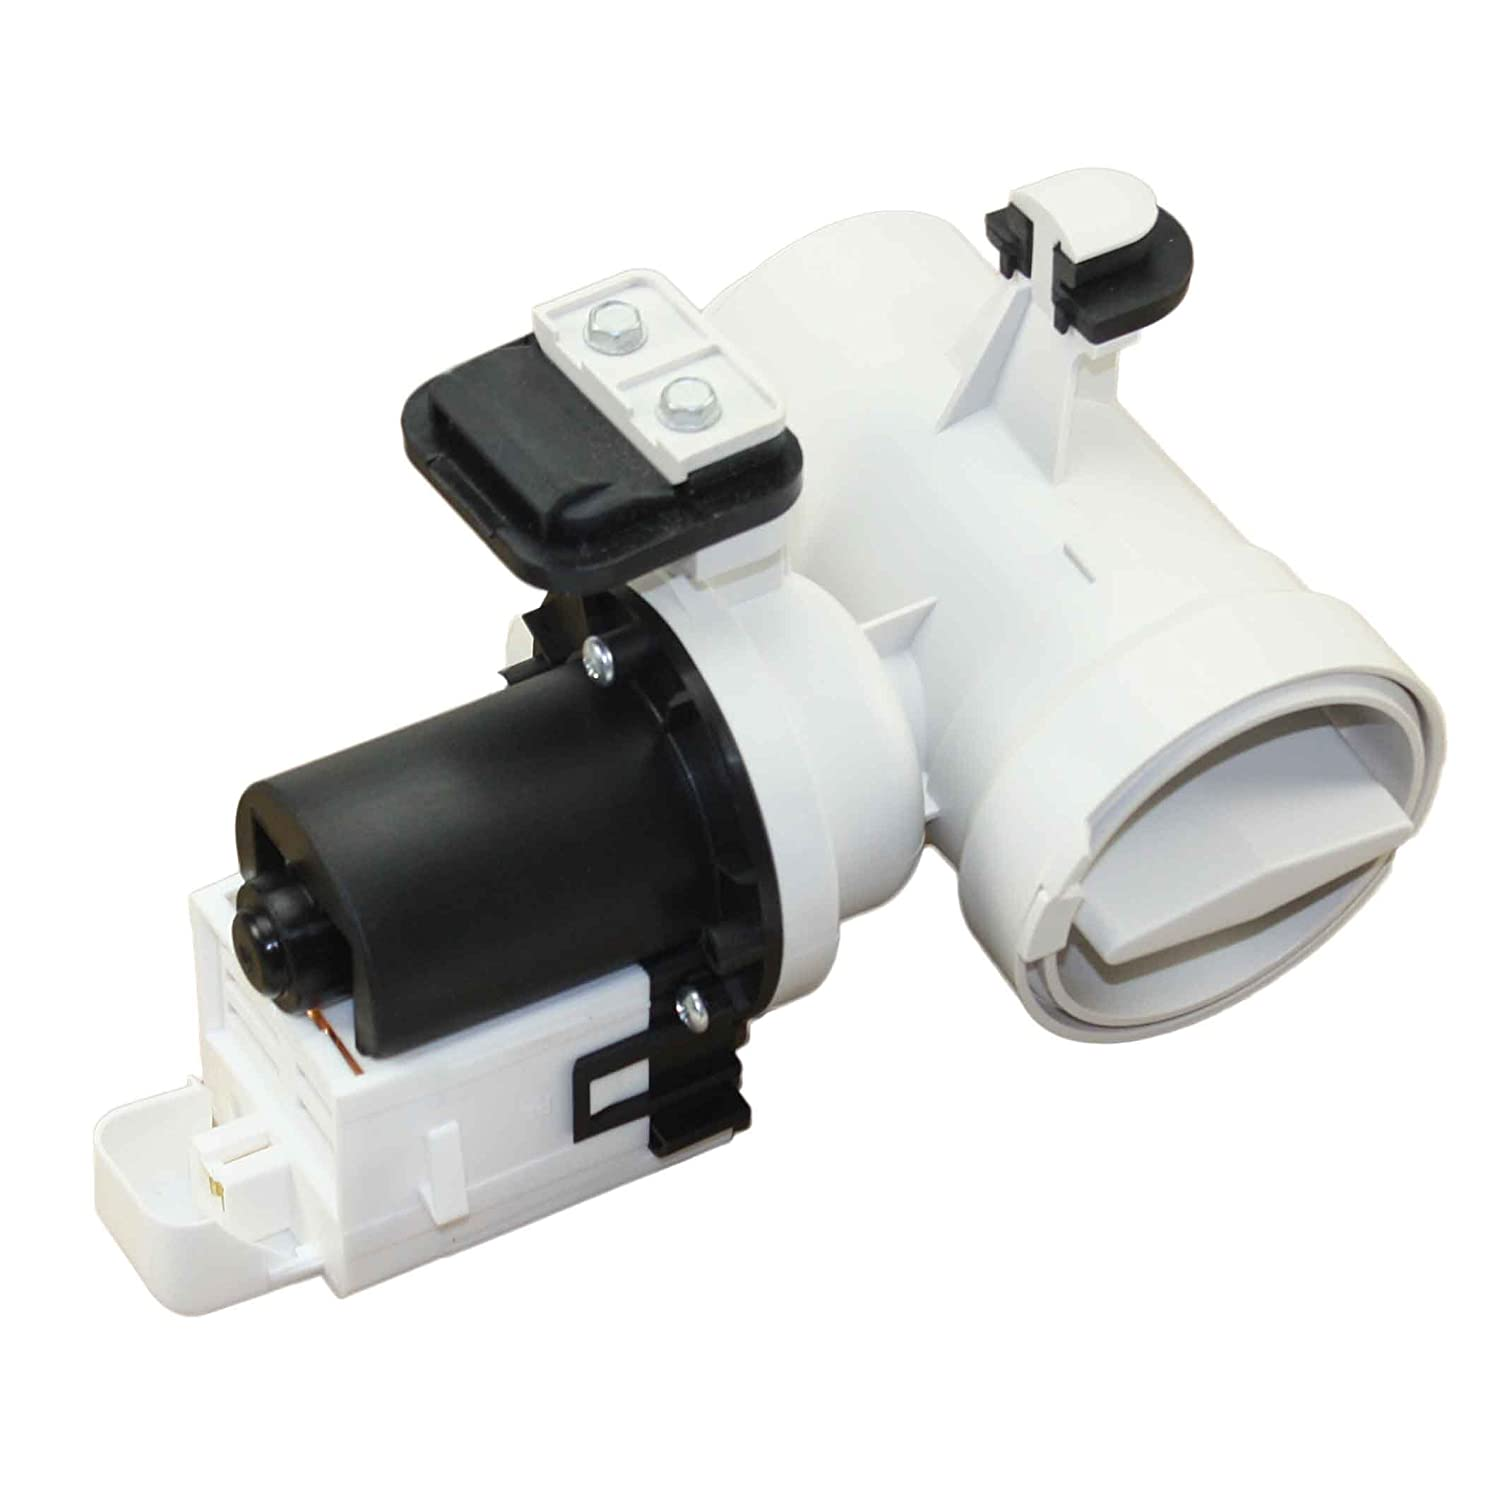 W10730972 Washer Drain Pump For Whirlpool 8540024, W10130913, W10117829, AP4308966, PS1960402 (Original Version)